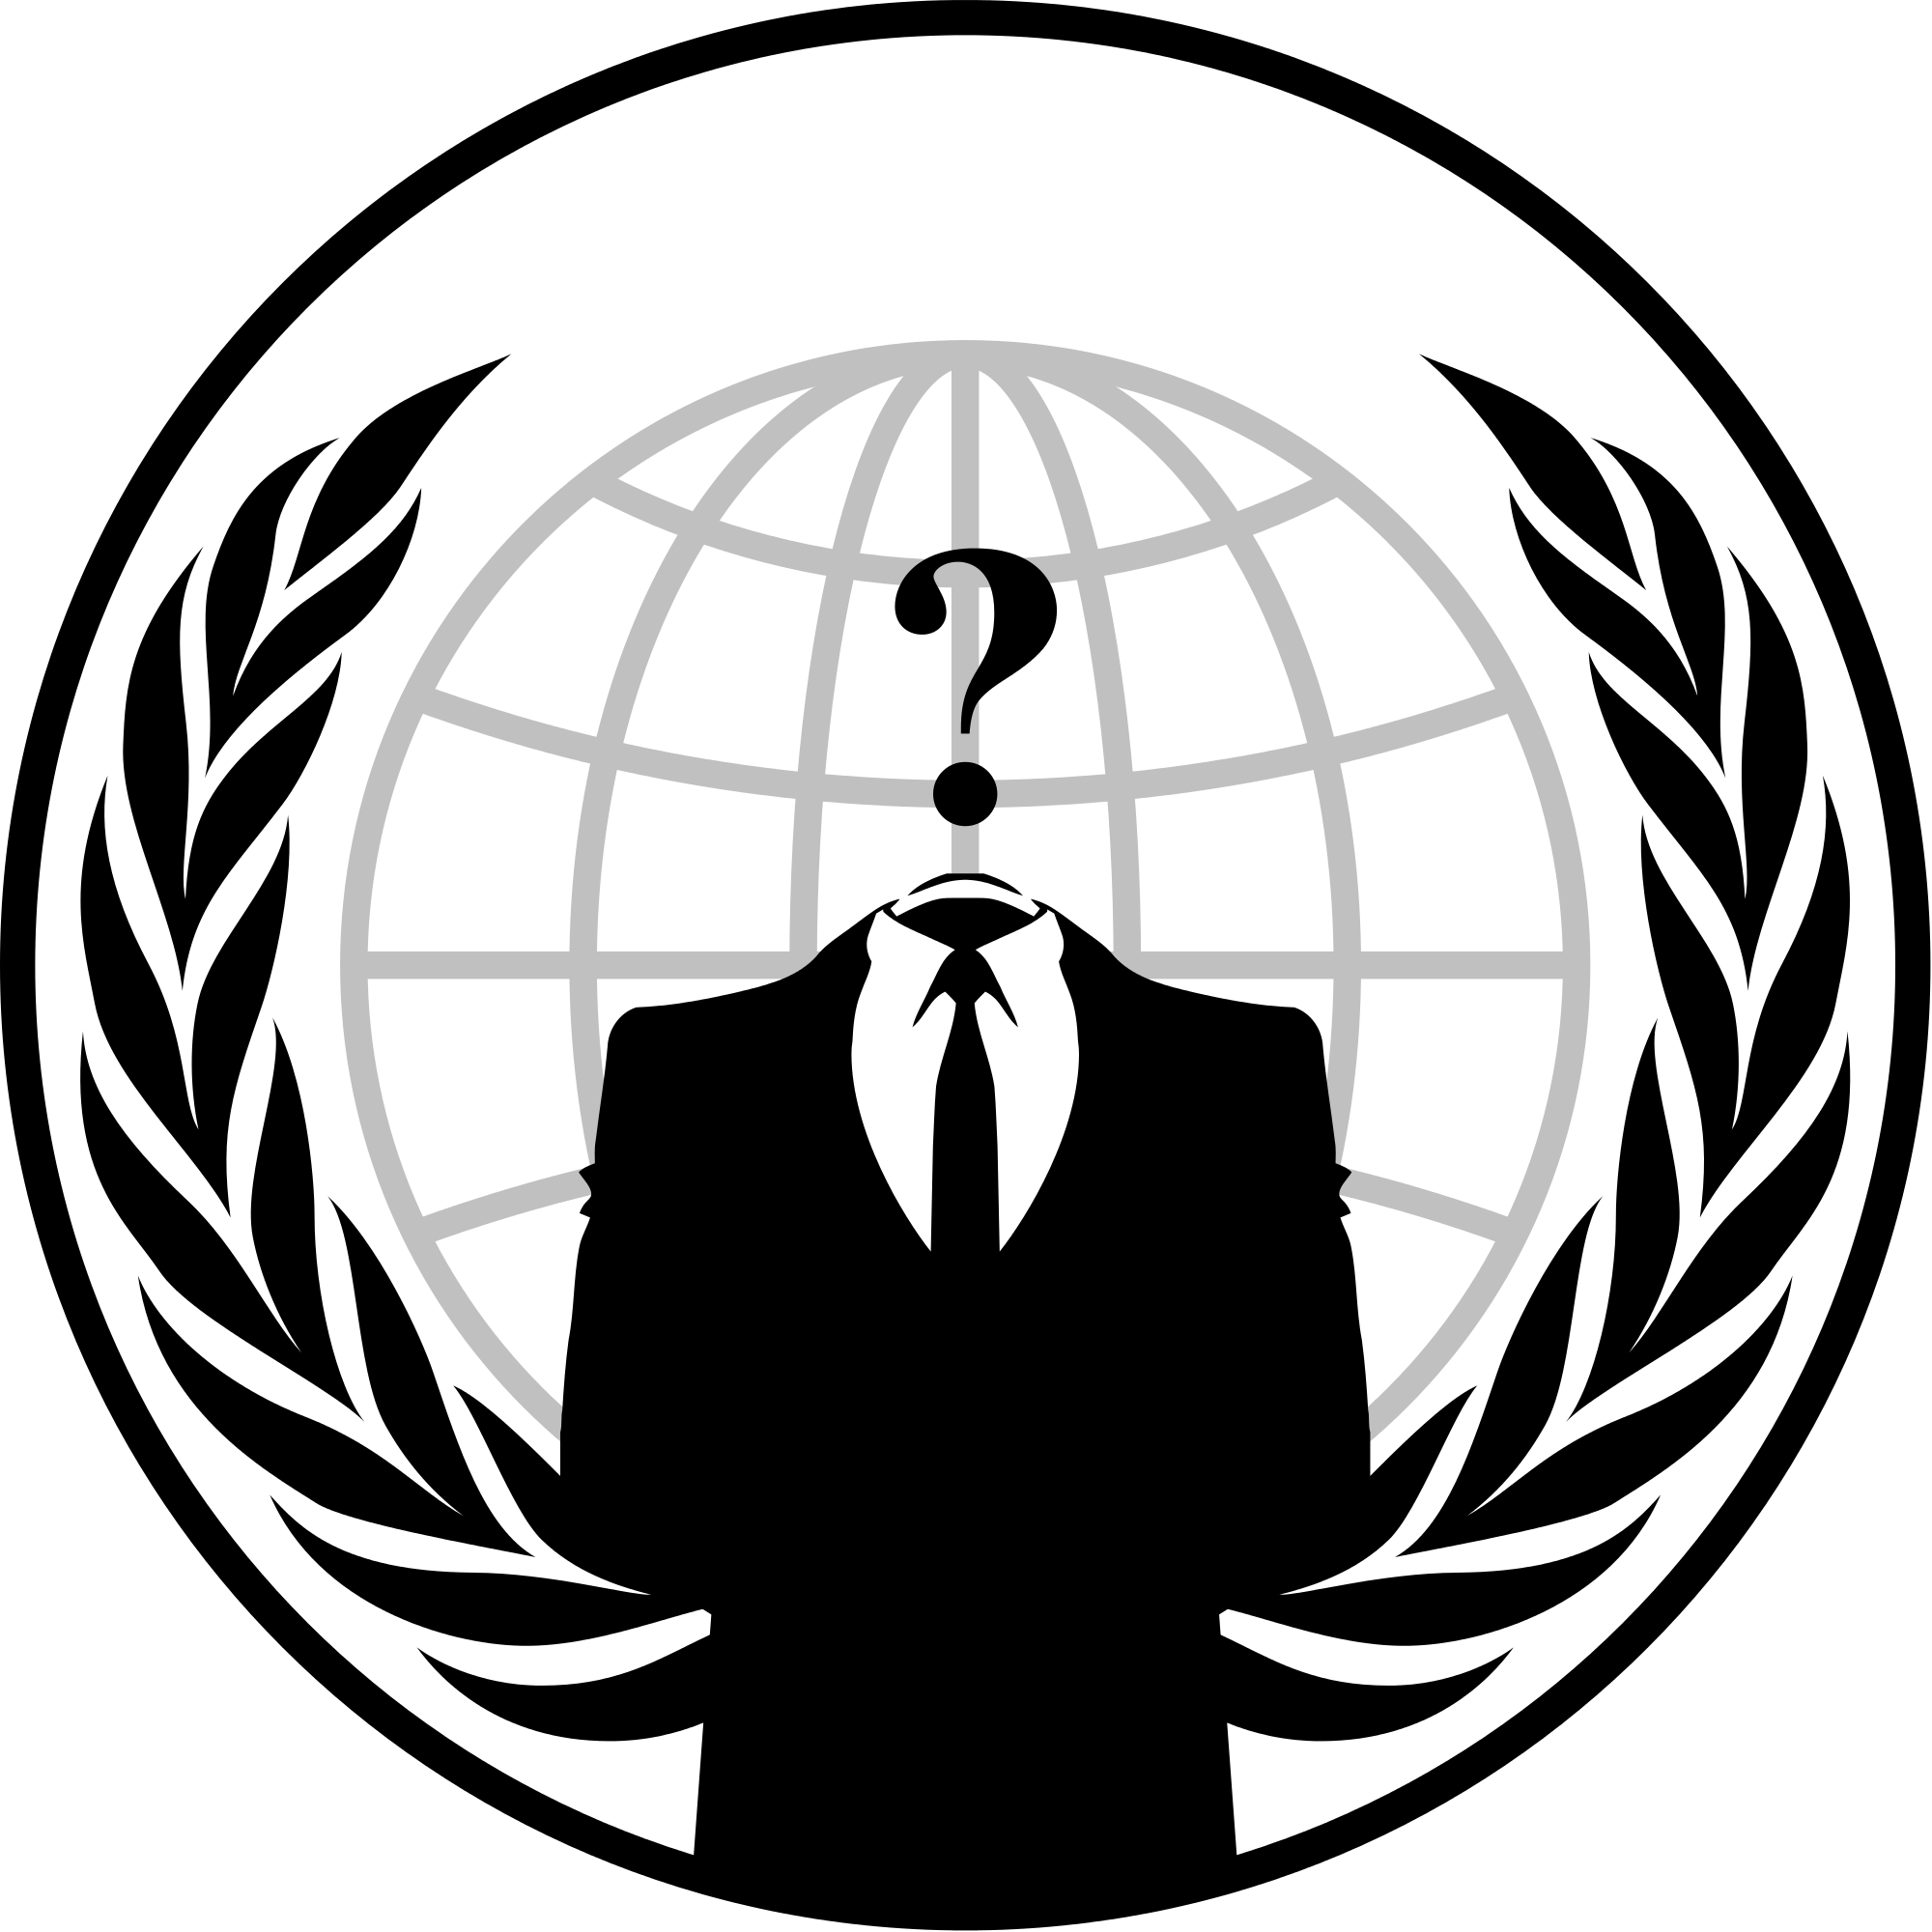 Anonymity - YouTube